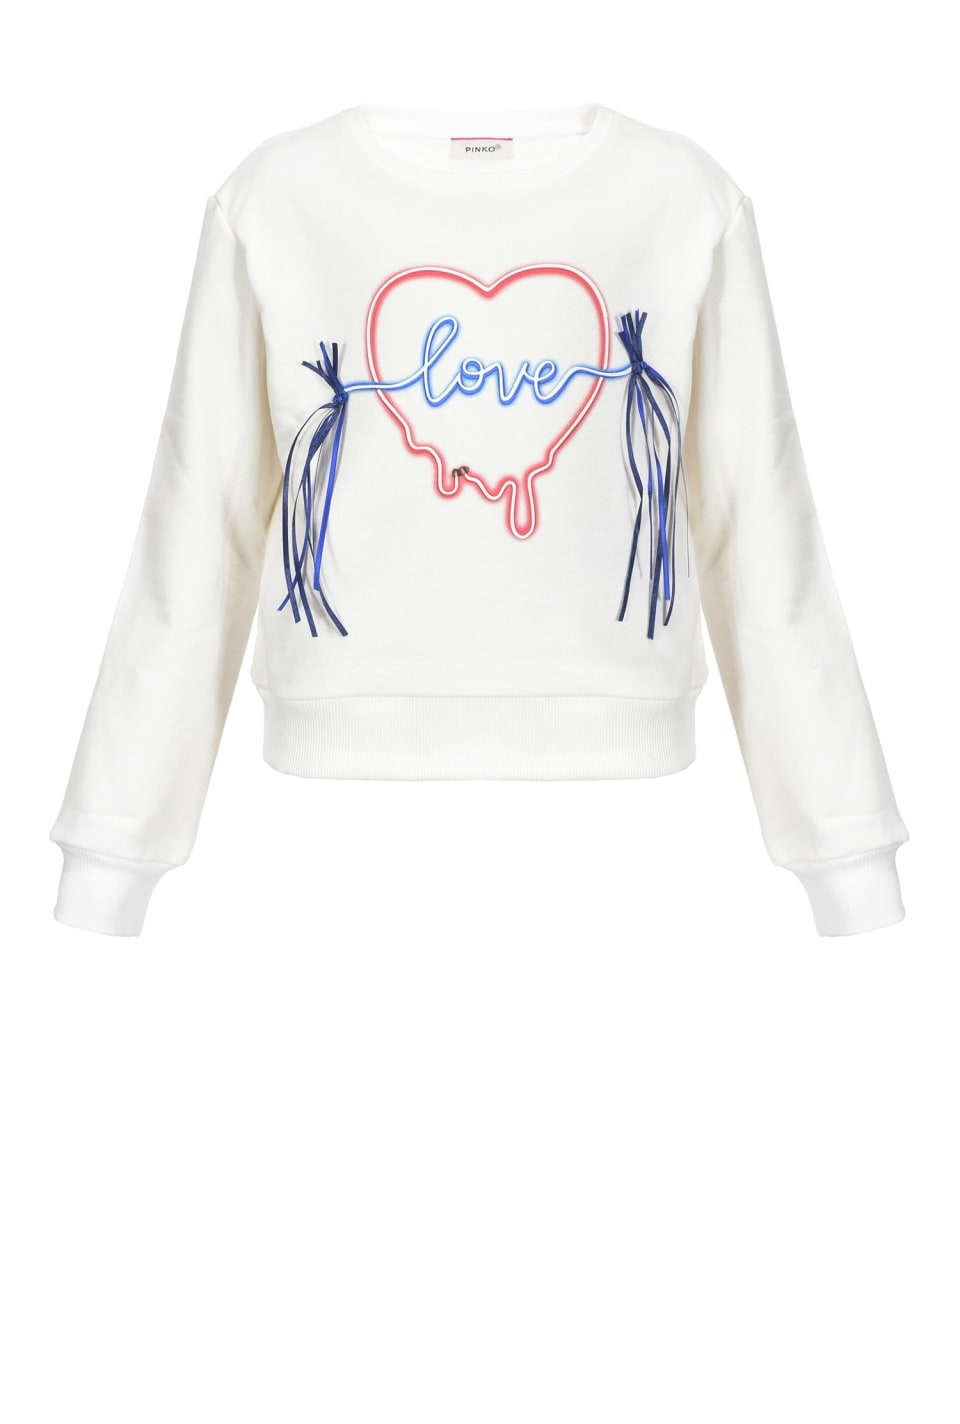 Love Neon sweatshirt